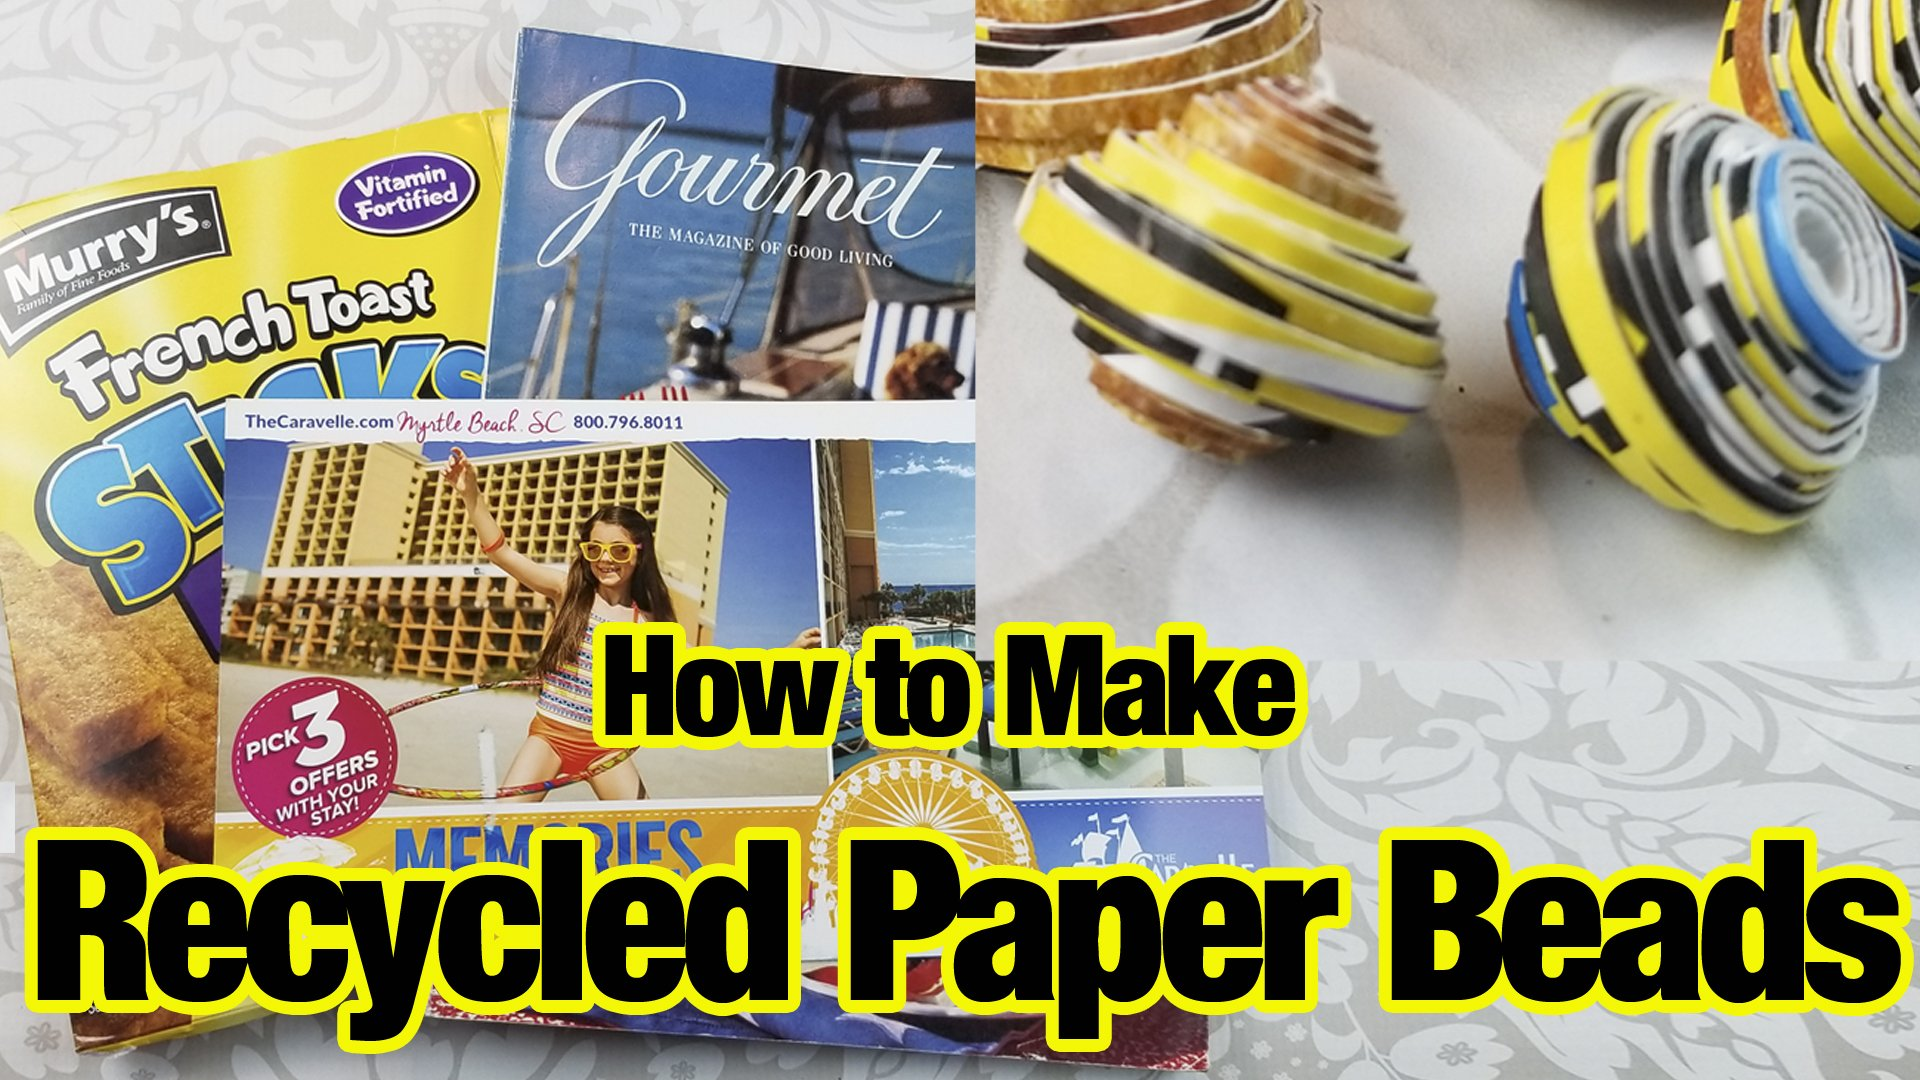 Making Beads from Recycled Paper